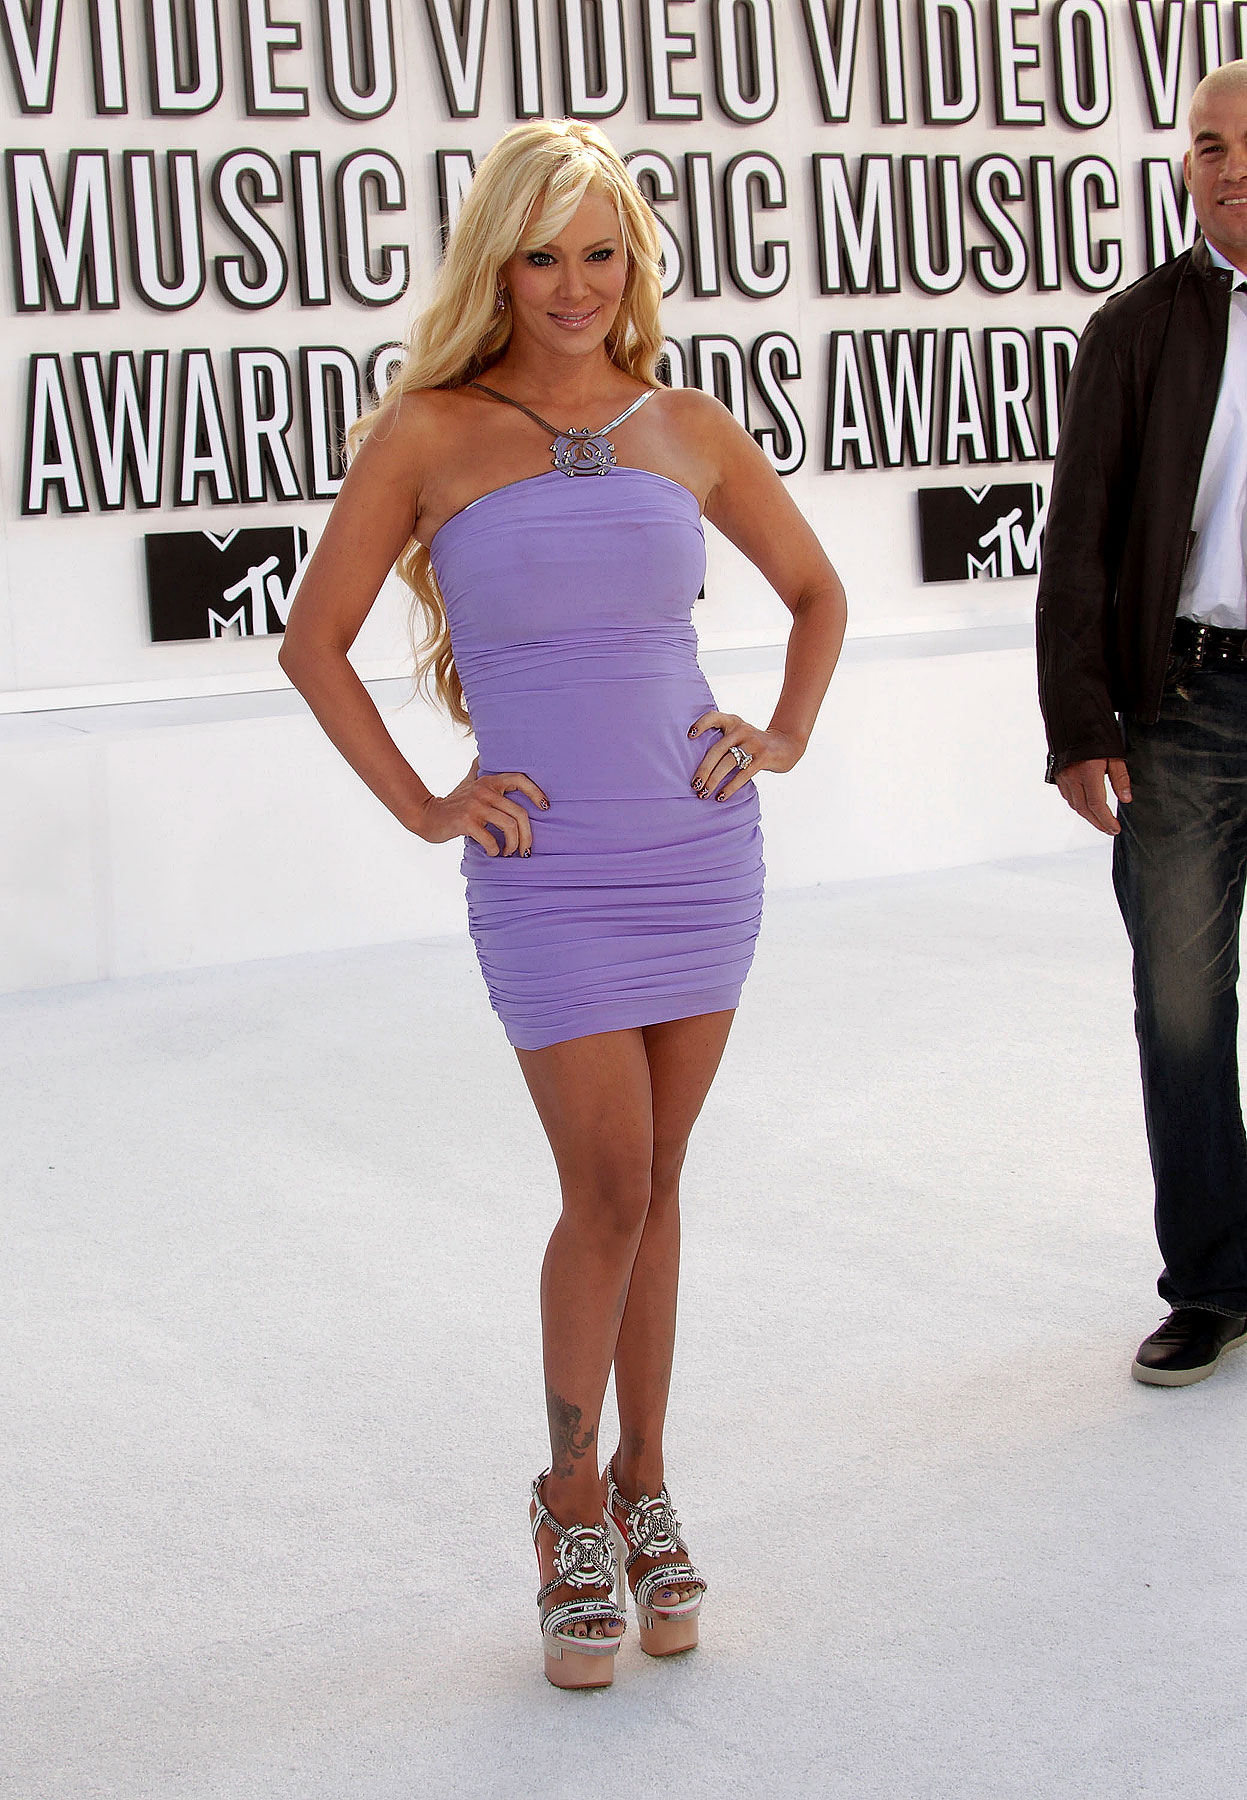 Jenna Jameson at the 2010 MTV Video Music Awards (PHOTOS)